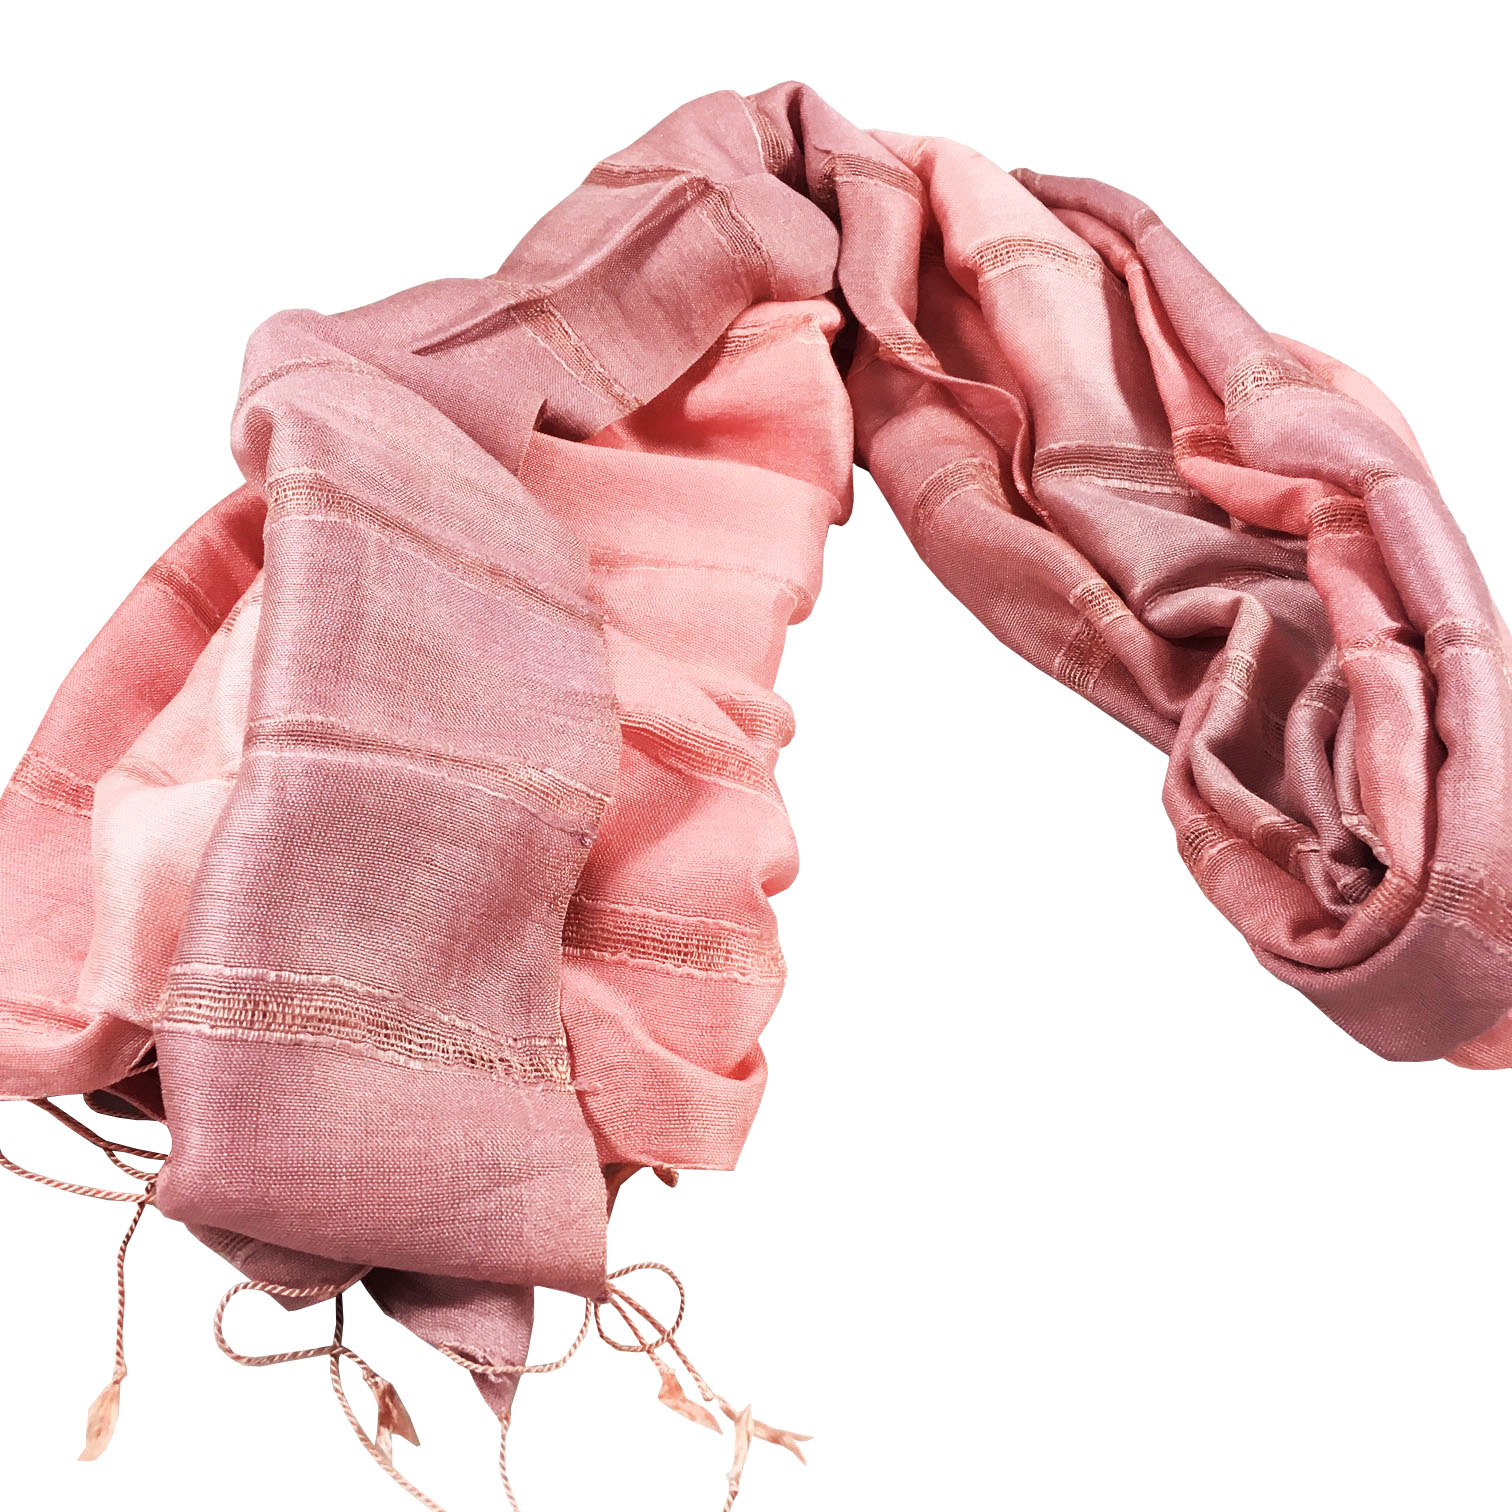 Blush pink Thai silk shawl with stripes